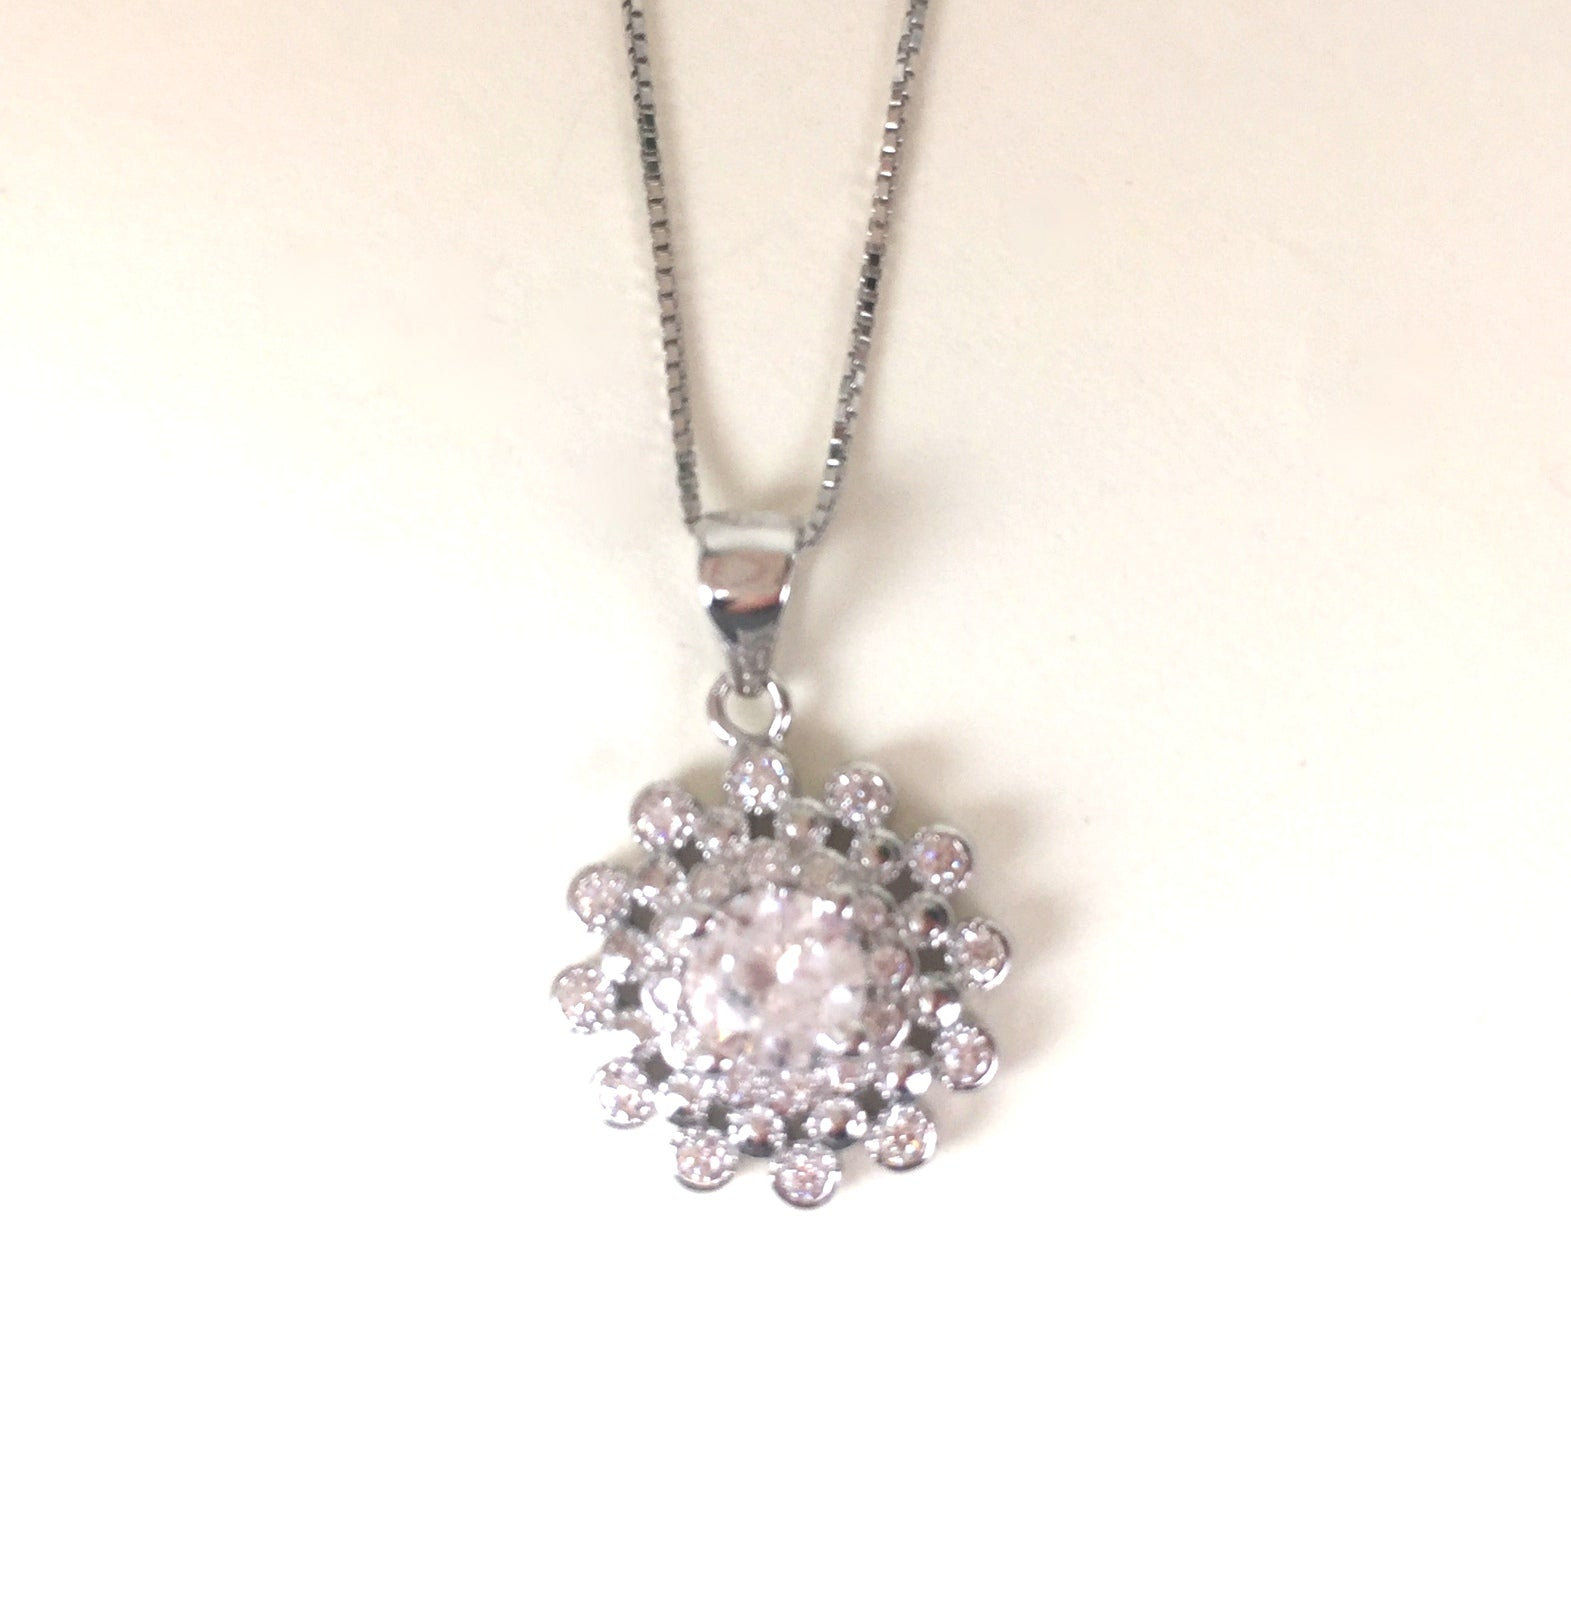 SPARKLING FLOWER PAVE CZ STERLING SILVER NECKLACE